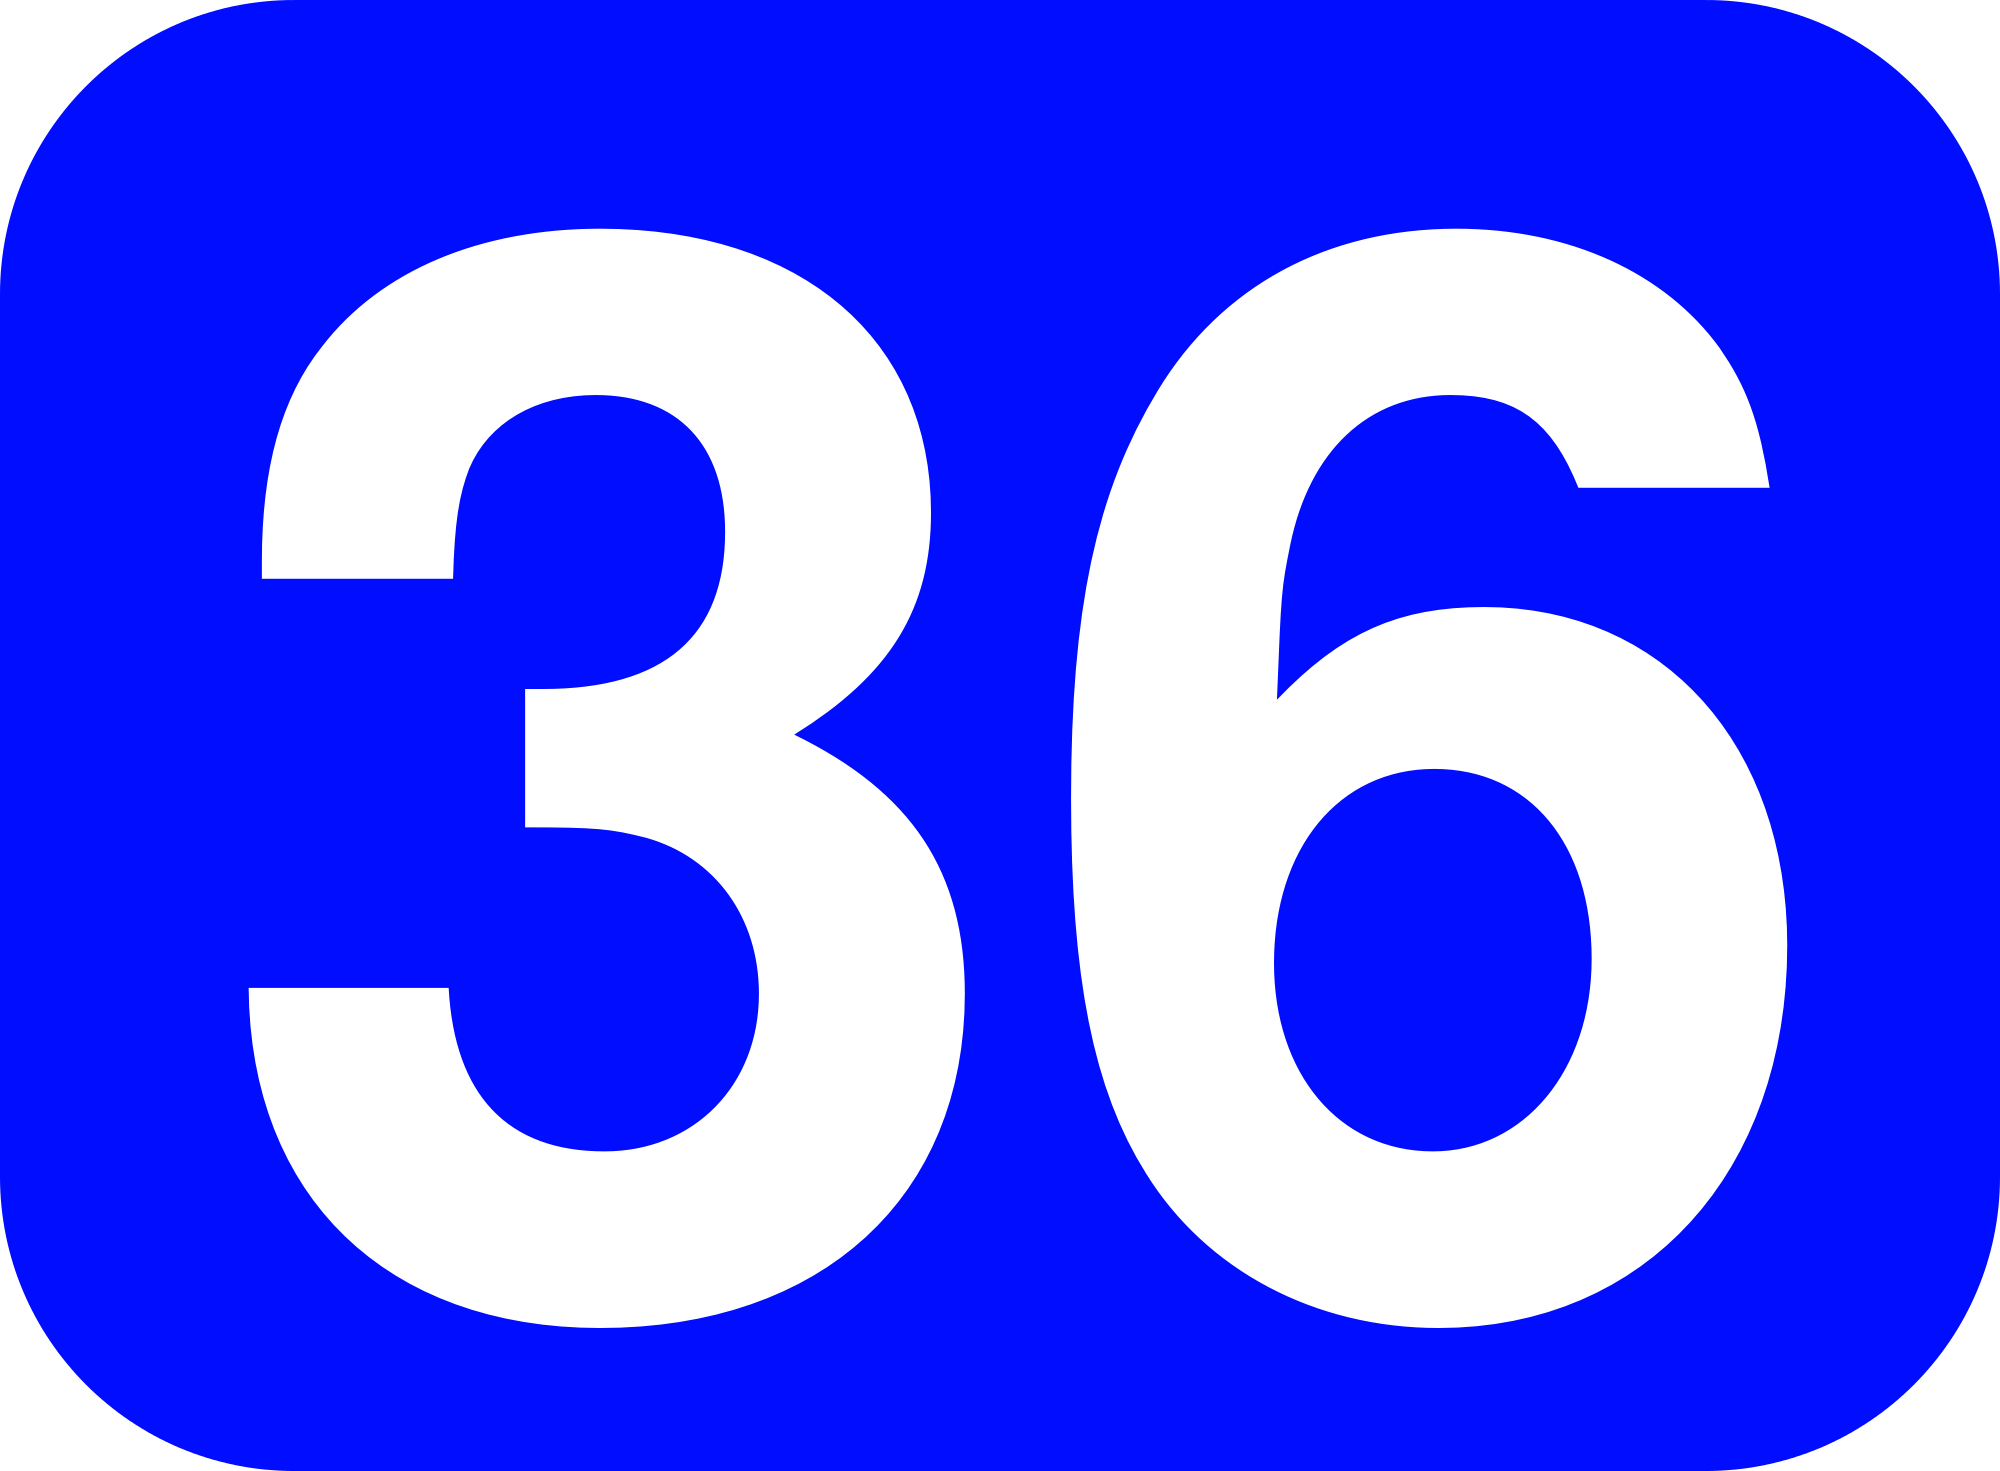 File:36 white, blue rounded rectangle.png